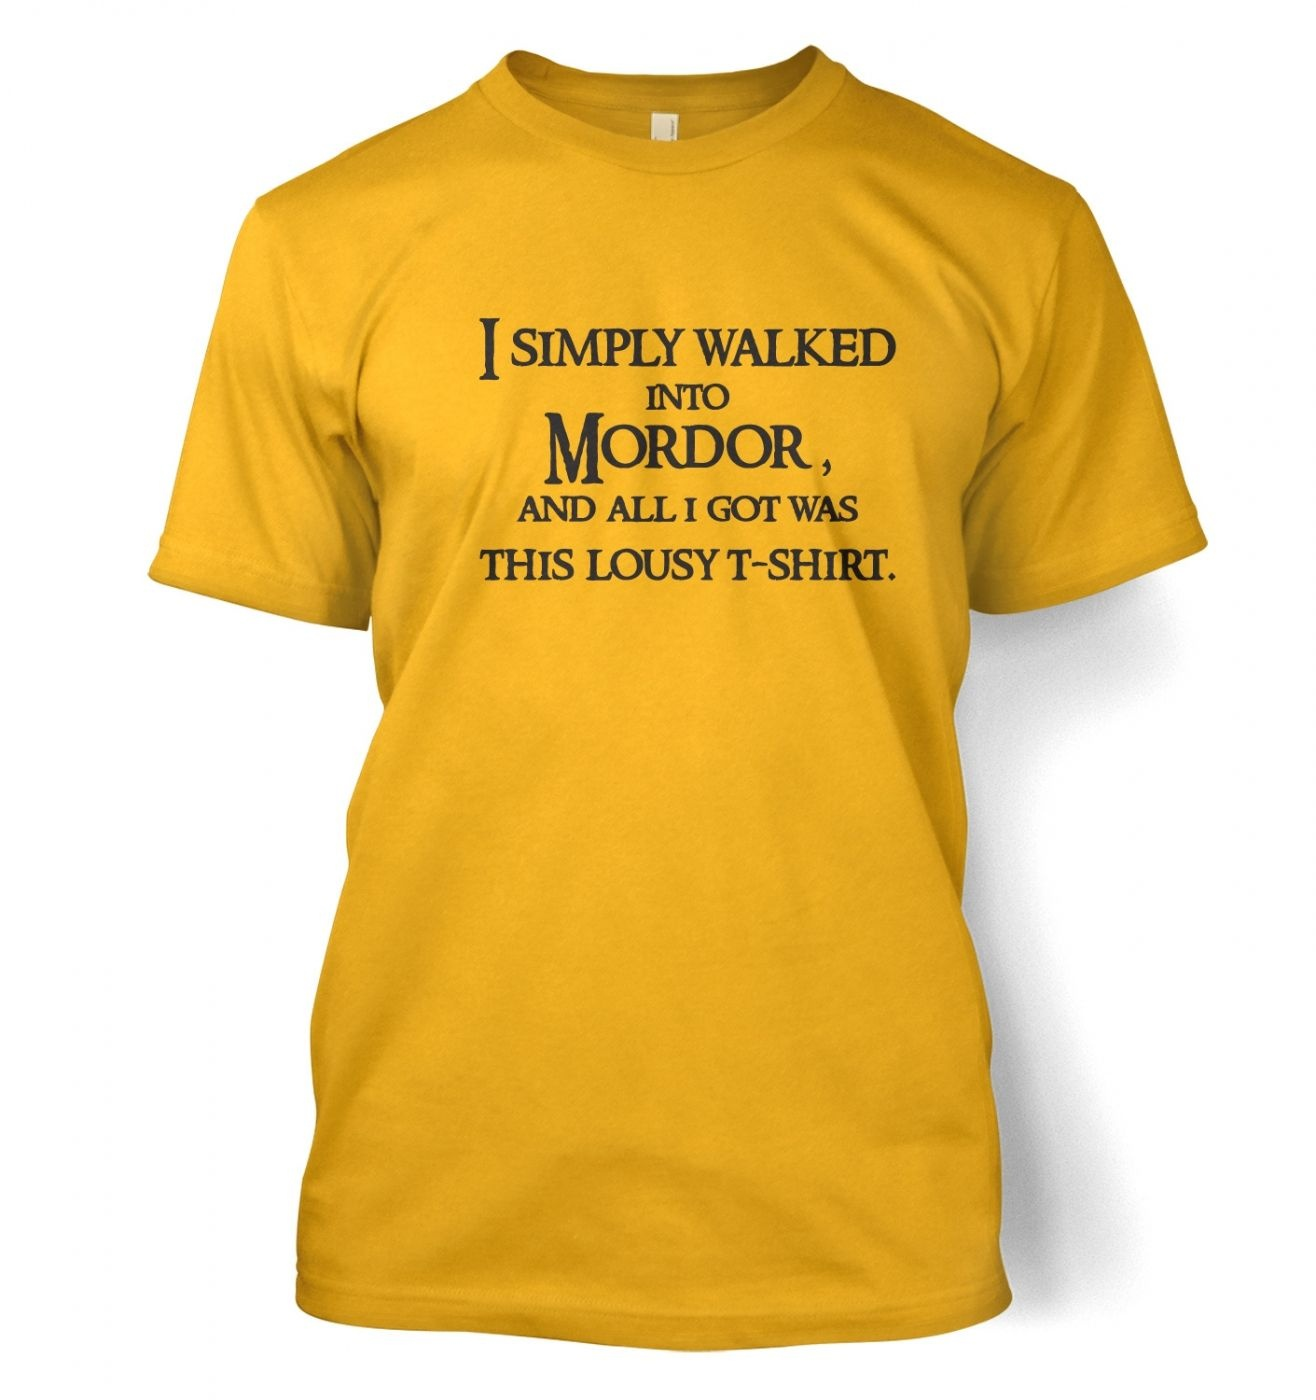 A T-Shirt From Mordor t-shirt